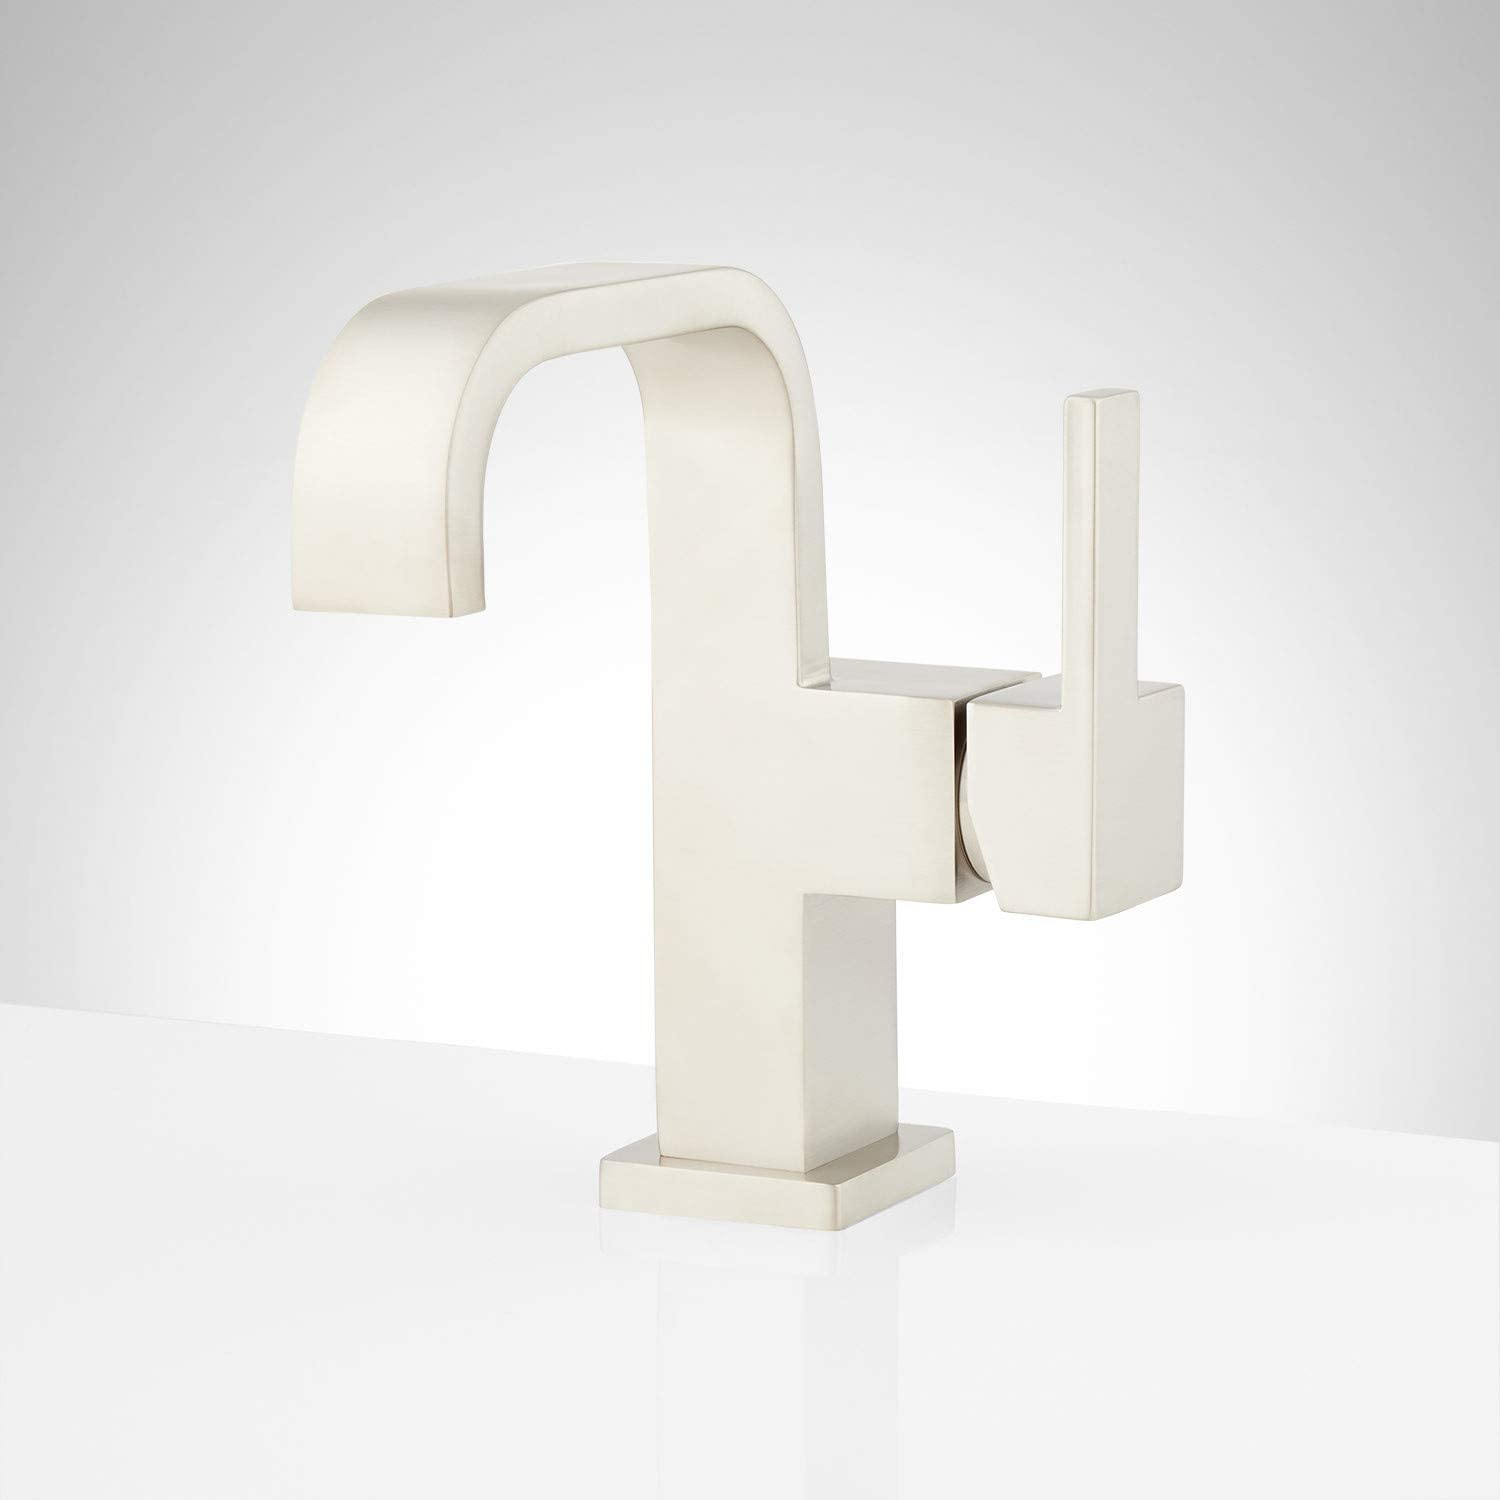 Signature Hardware 948580 Rigi 1.2 GPM Single Hole Bathroom Faucet with Pop-Up Drain Assembly